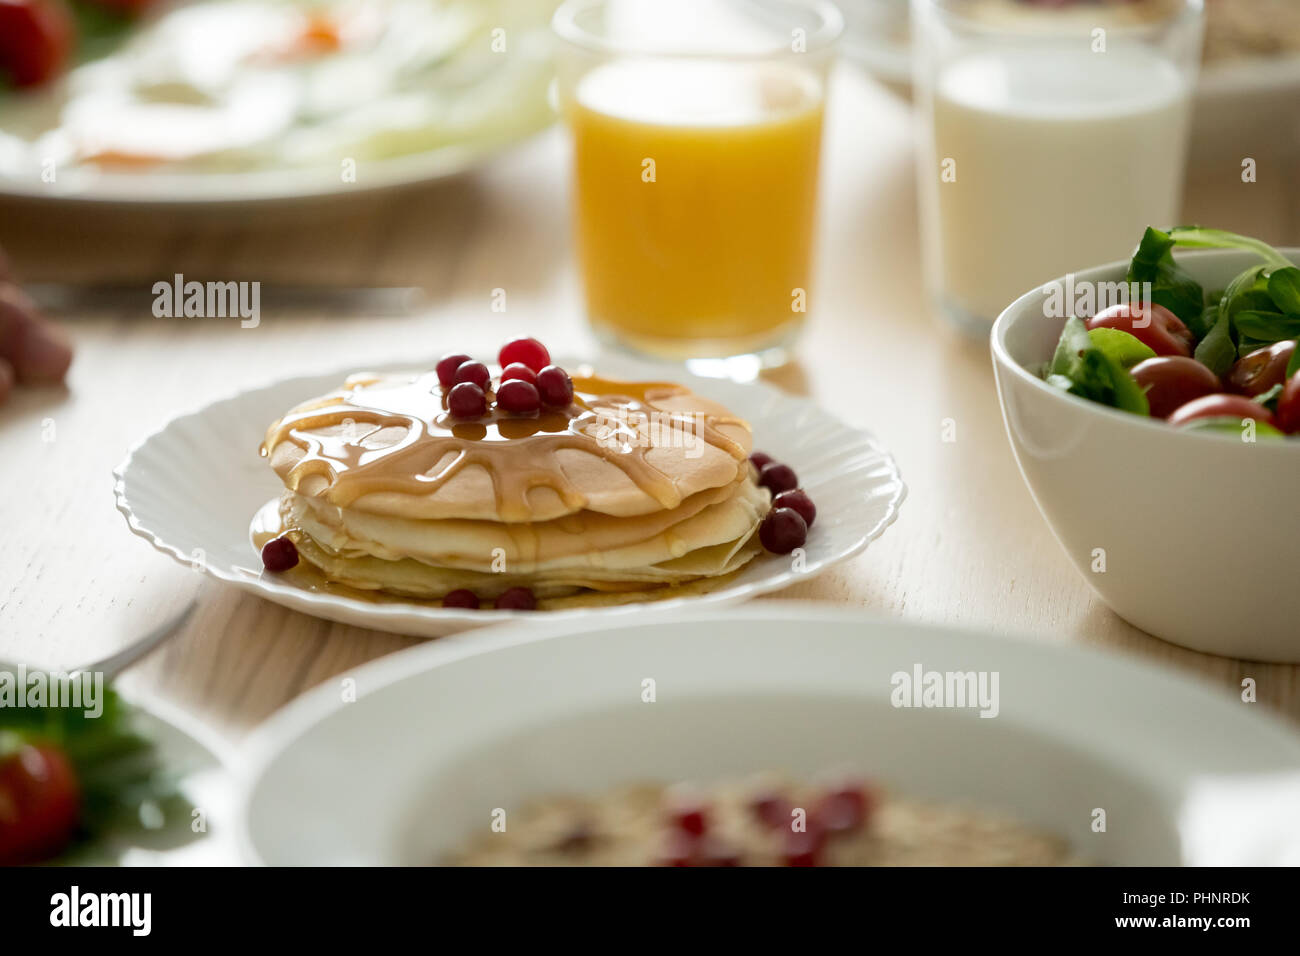 Close up of tasty pancakes served with syrup and berries - Stock Image